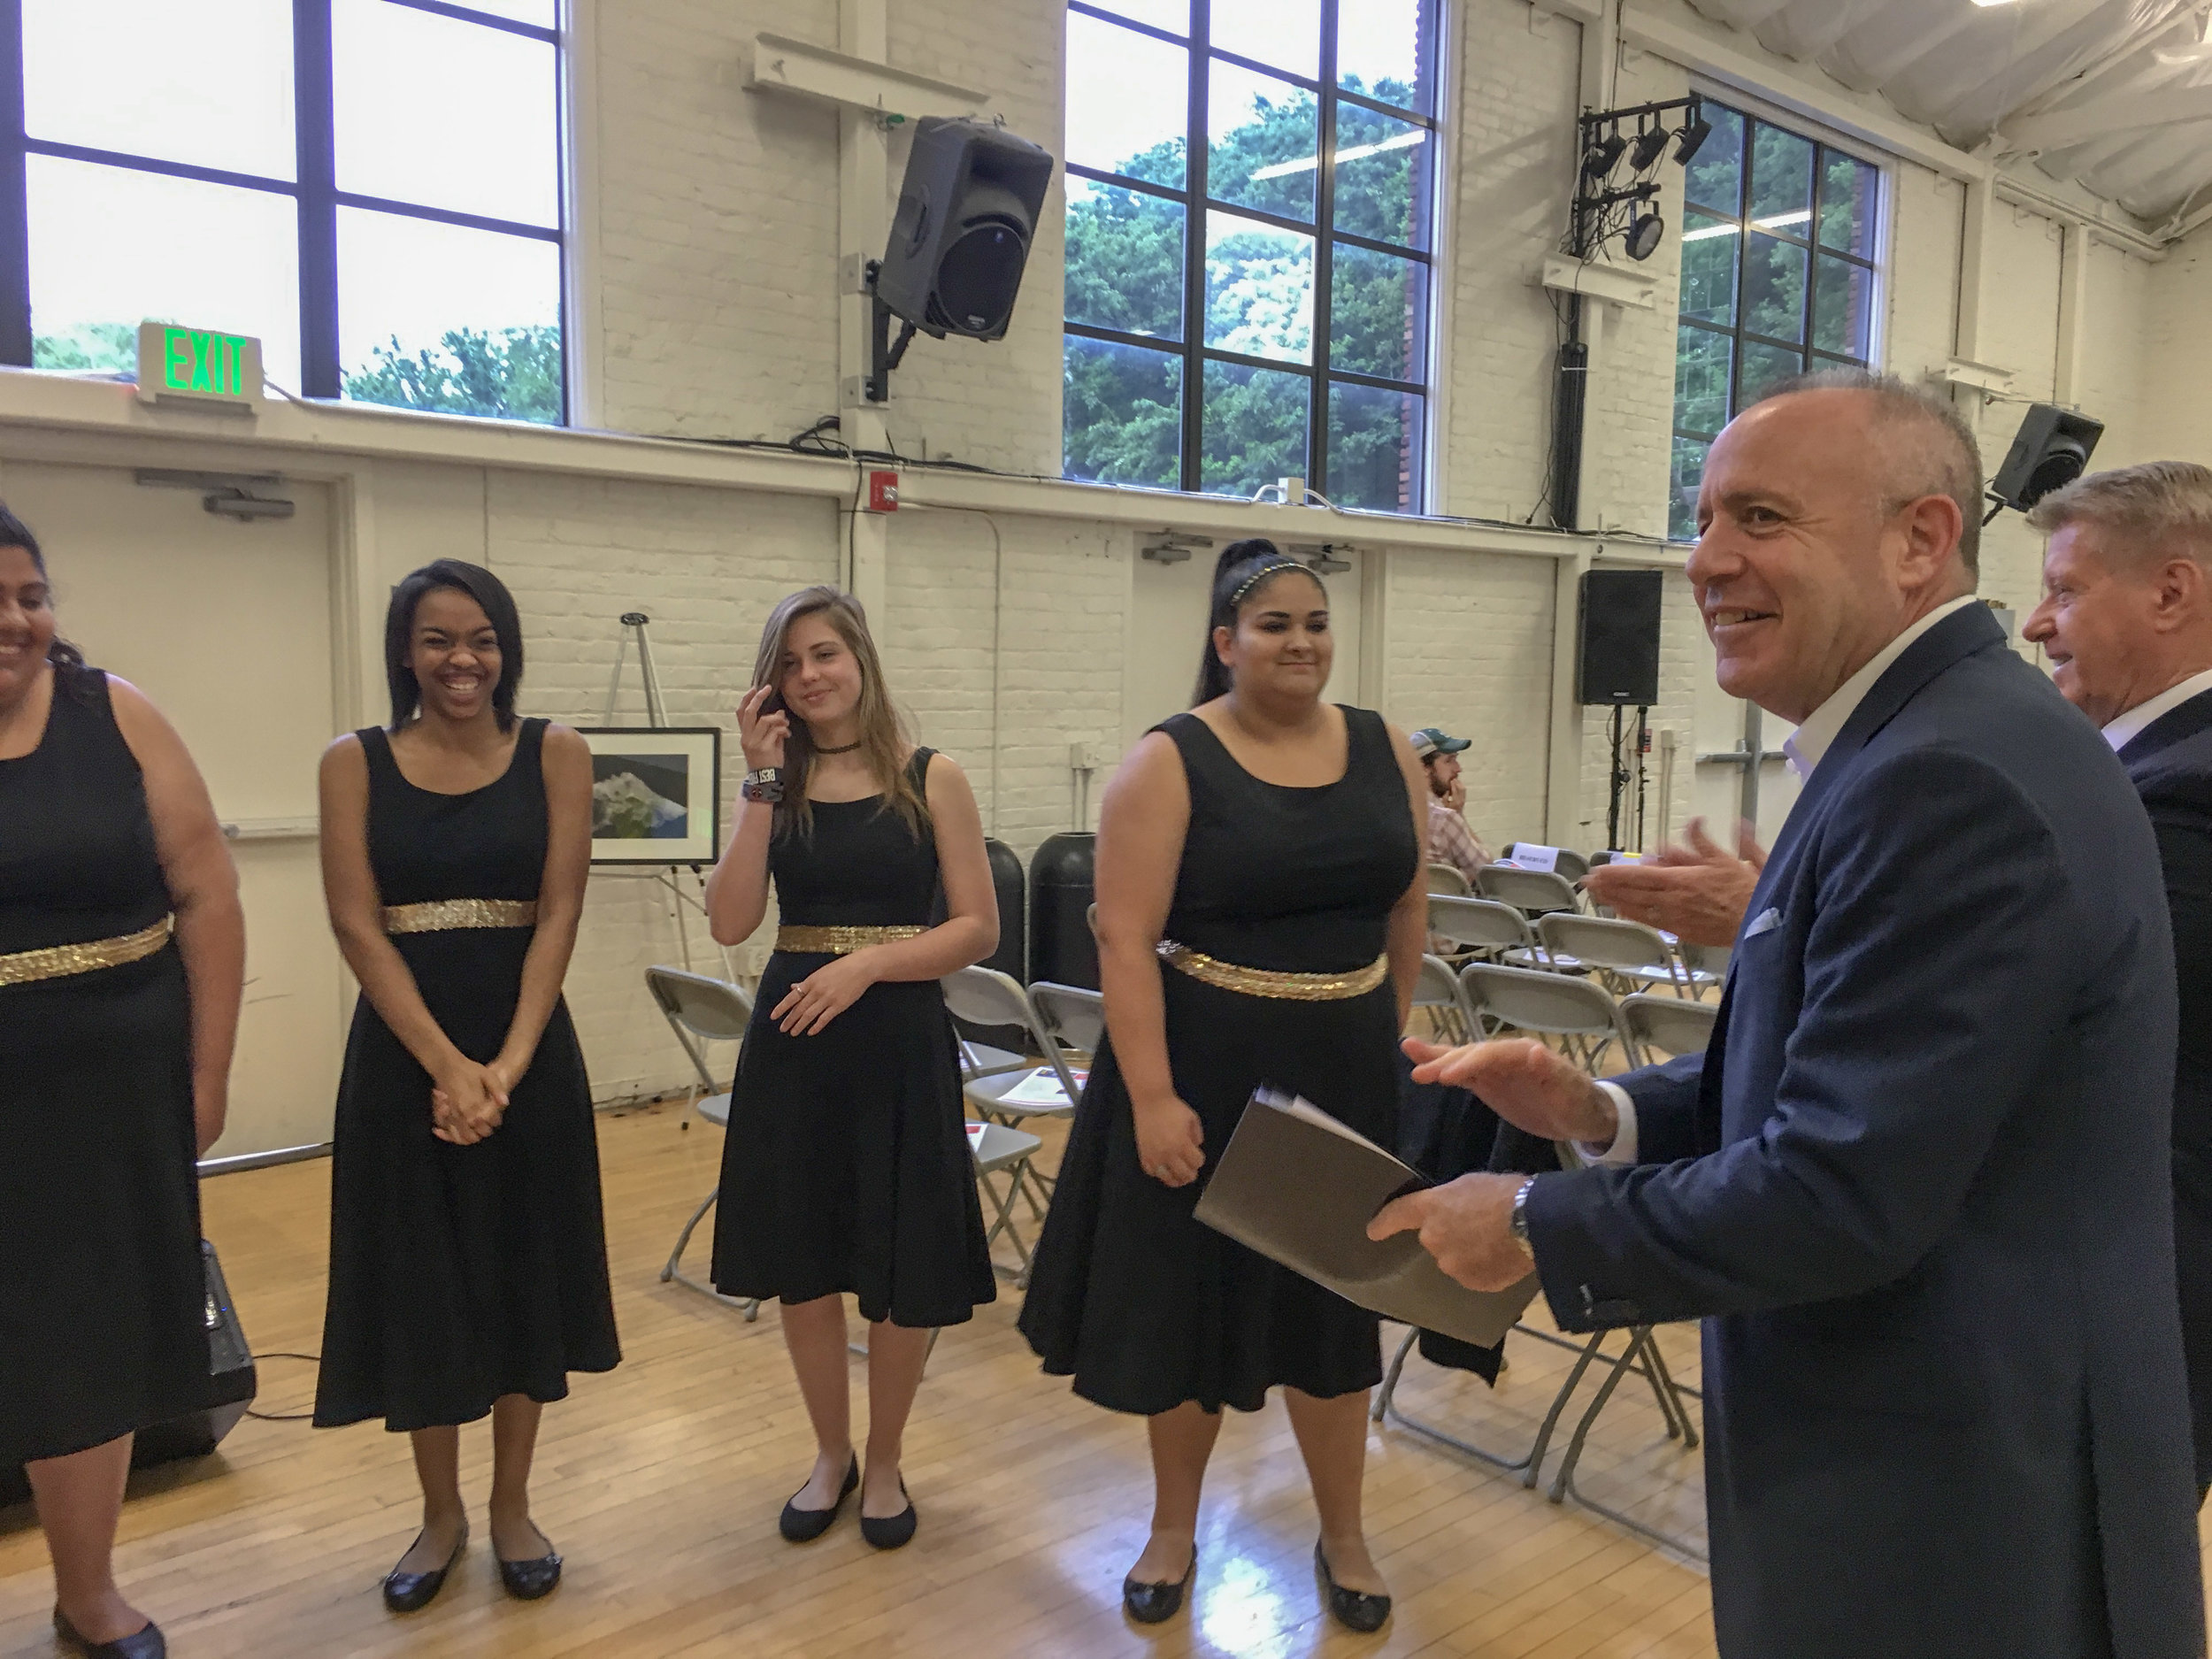 Mayor Darrell Steinberg applauds Rio Linda High School NYN (Not Yet Named) Choir at the CLARA auditorium